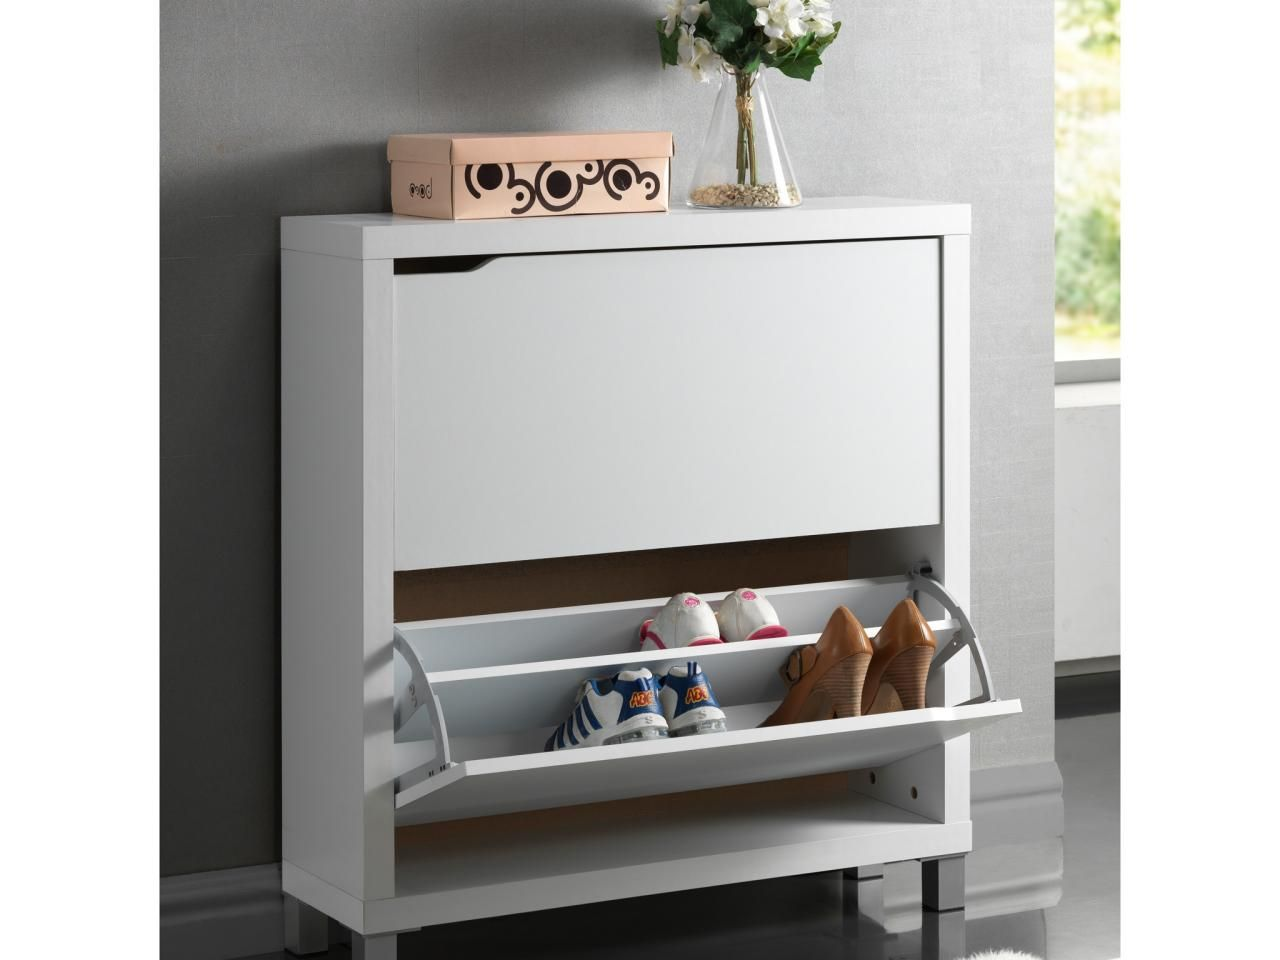 Slim Shoe Cabinet 7 Multifunctional Organizers For Small Entryways Paper Keys And